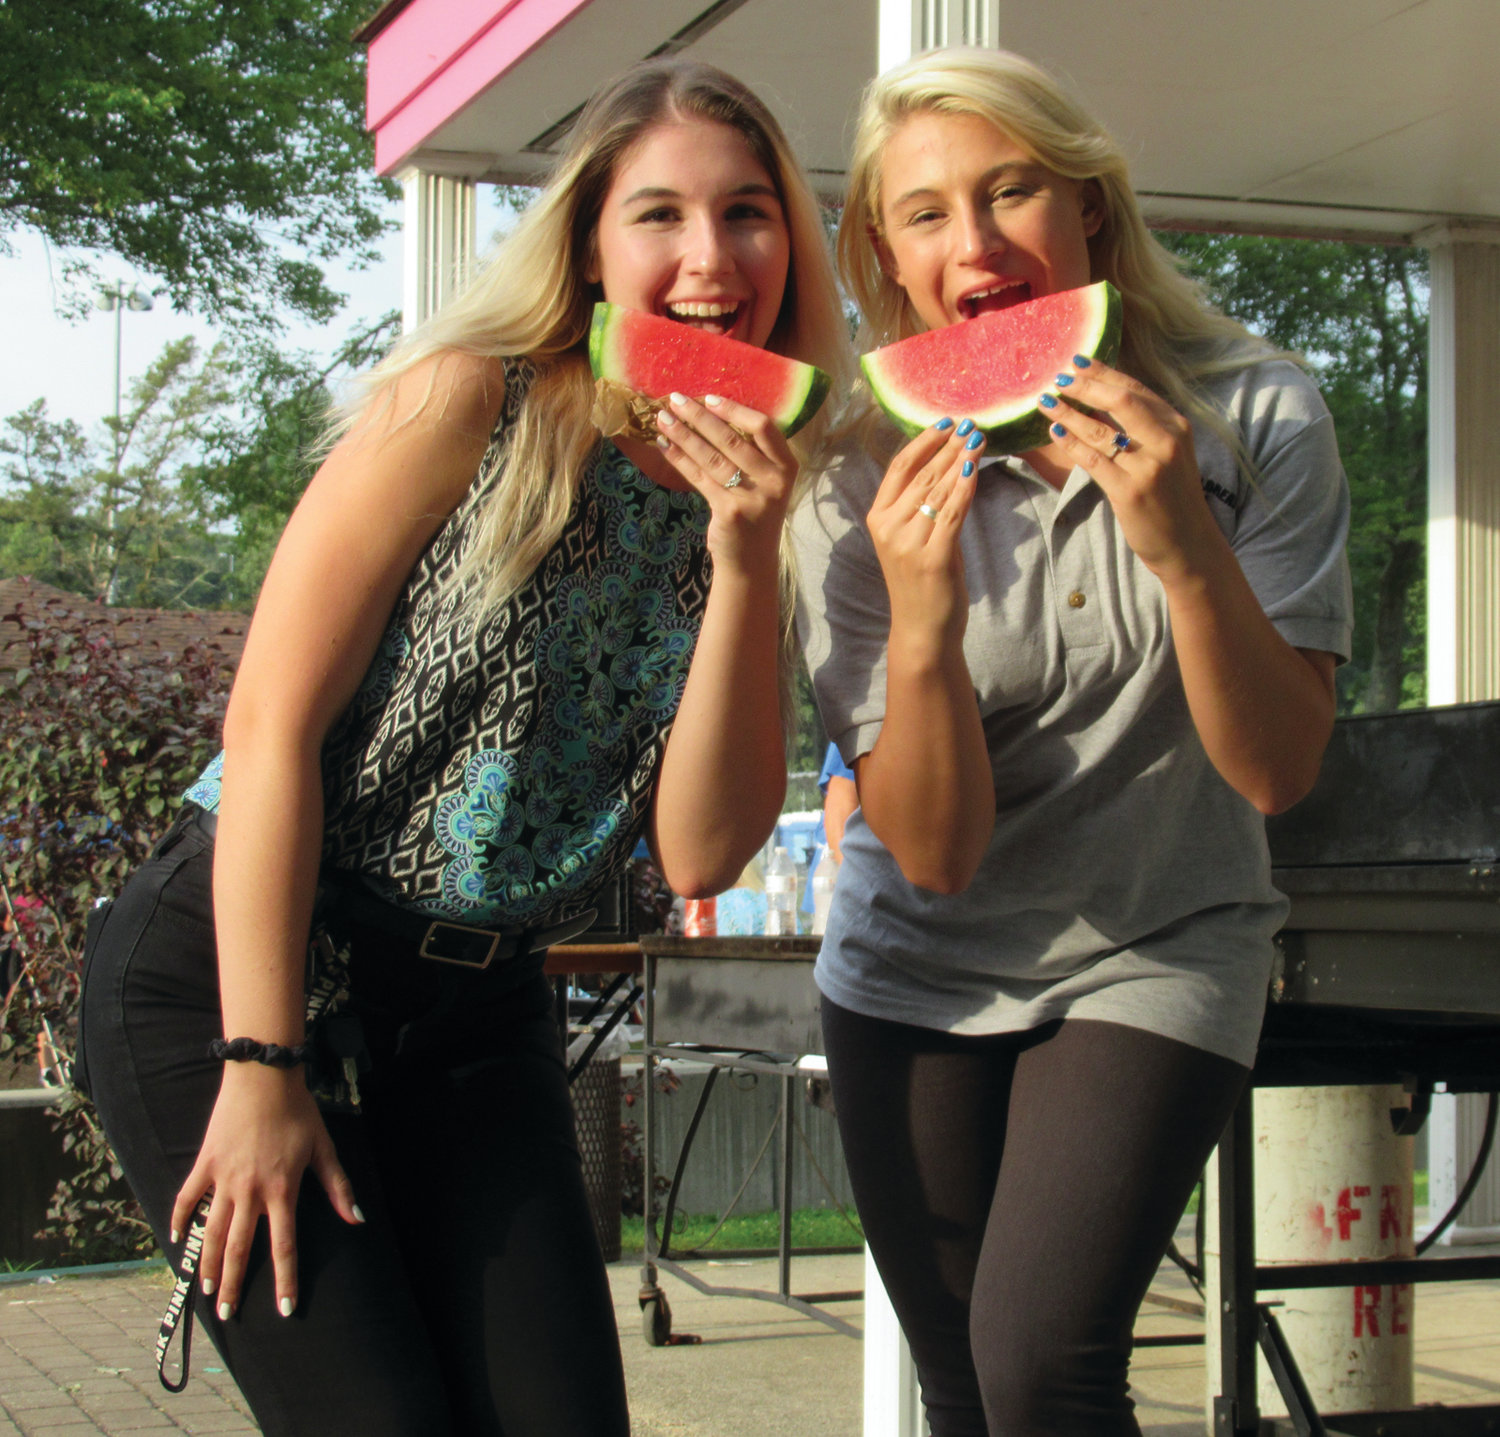 DELIGHTFUL DUTY: Explorer Post advisors Antoinette Bongiornos of Smithfield, left, and Allegra Graziano of Johnston are about to sample a piece of the chilled watermelon that was sliced and served Tuesday's night.